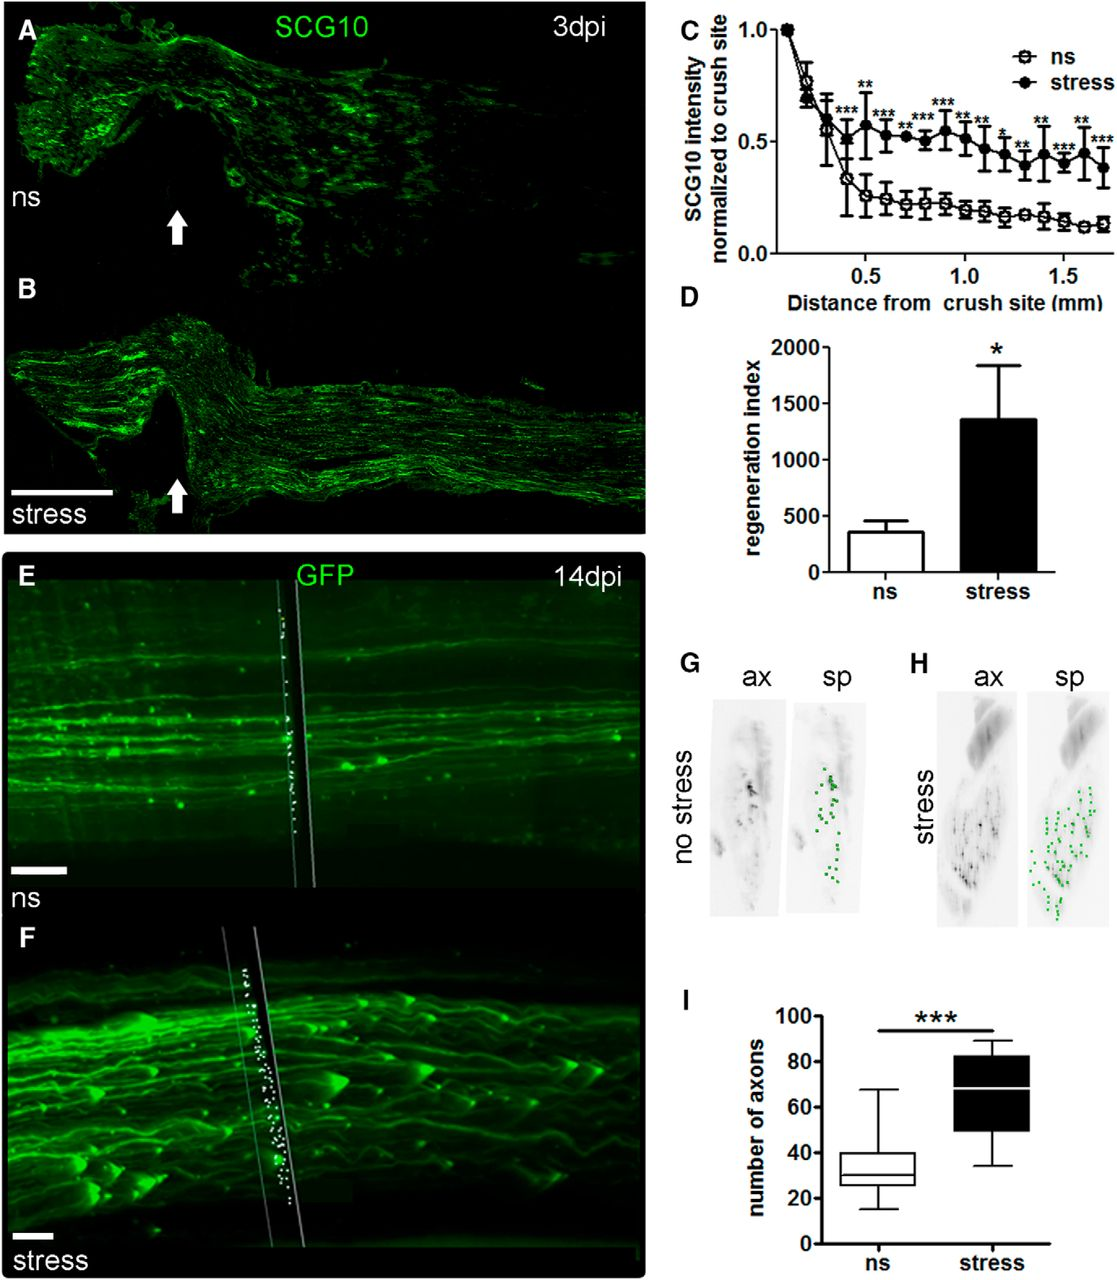 stress increases peripheral axon growth and regeneration